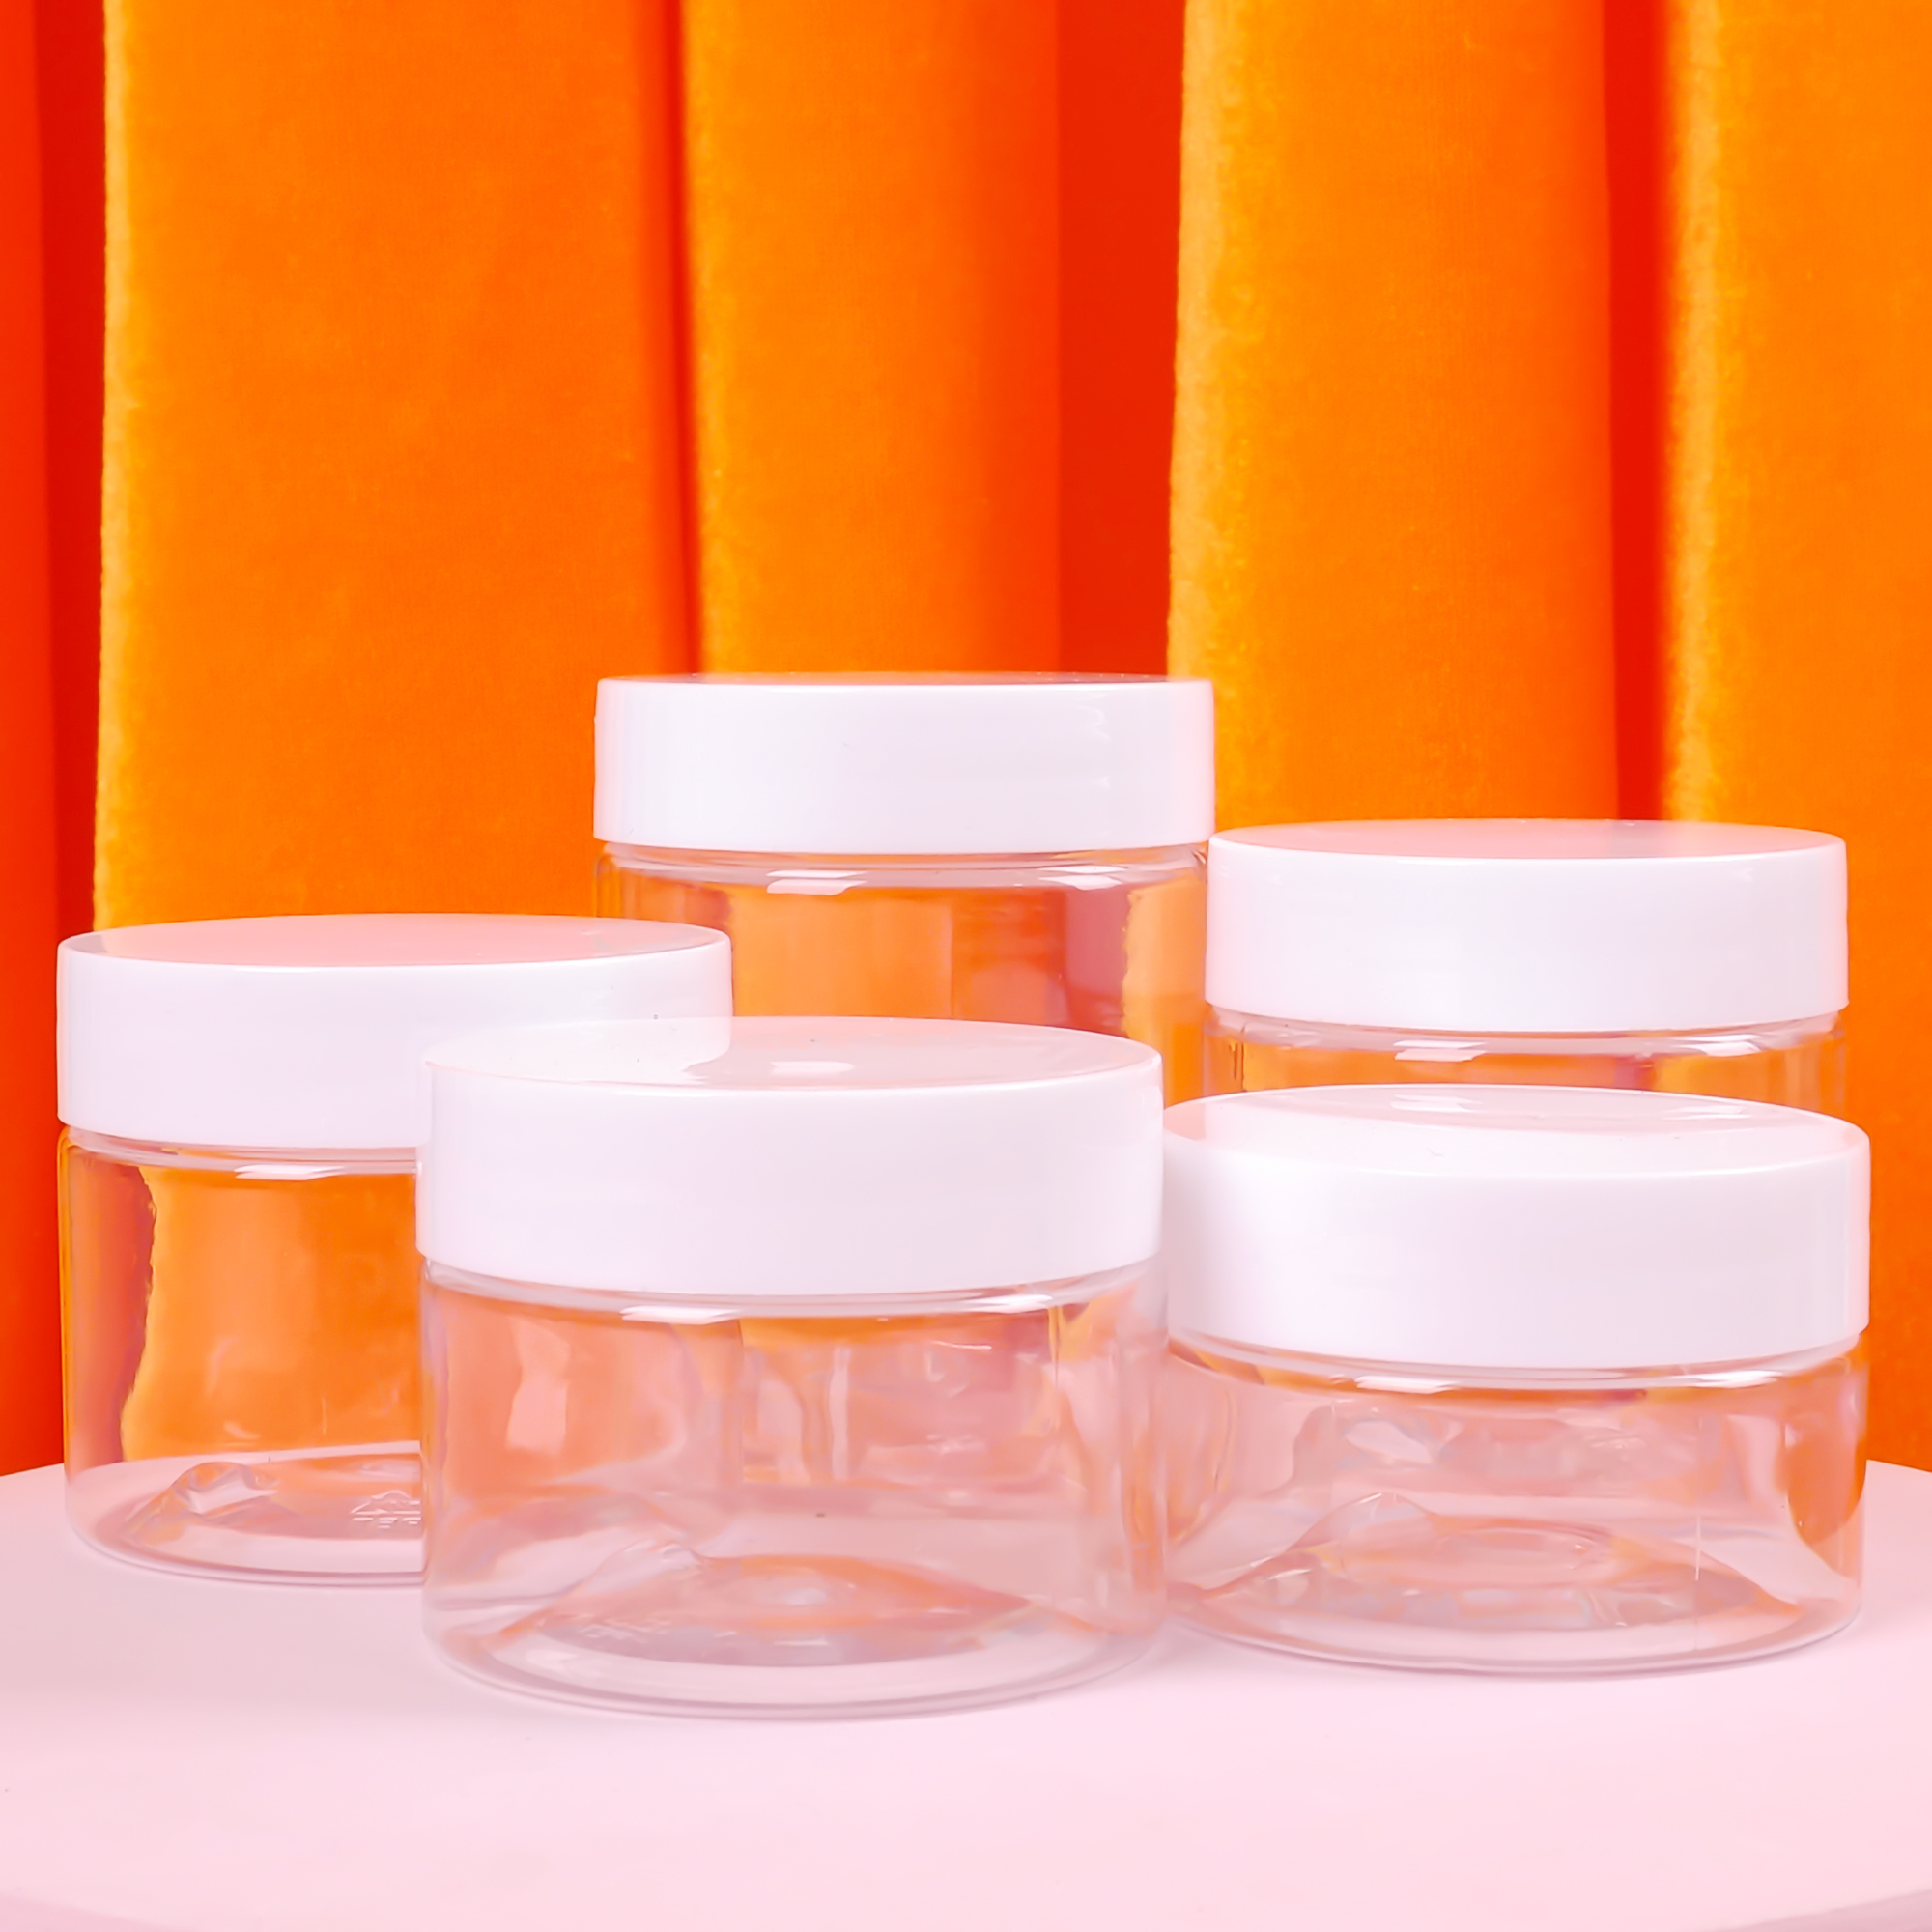 30ml/40ml/50ml/60ml/80ml Clear Plastic Jar with Lids Refillable Empty Cosmetic Containers Jar for Travel Storage Make Up